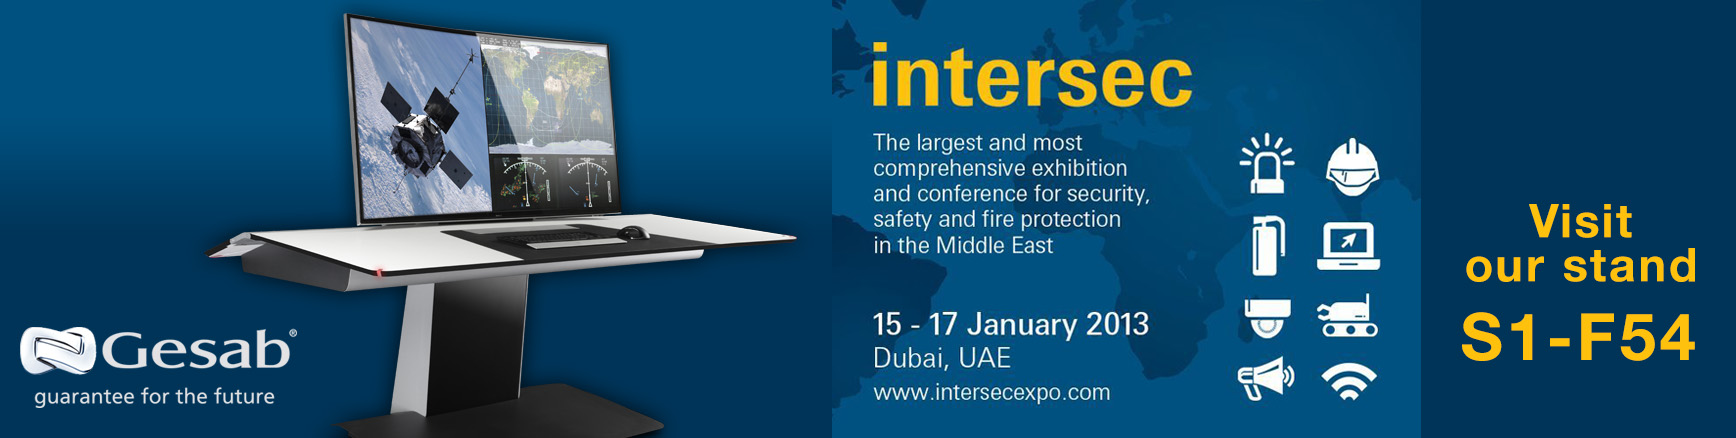 feria intersec gesab actea